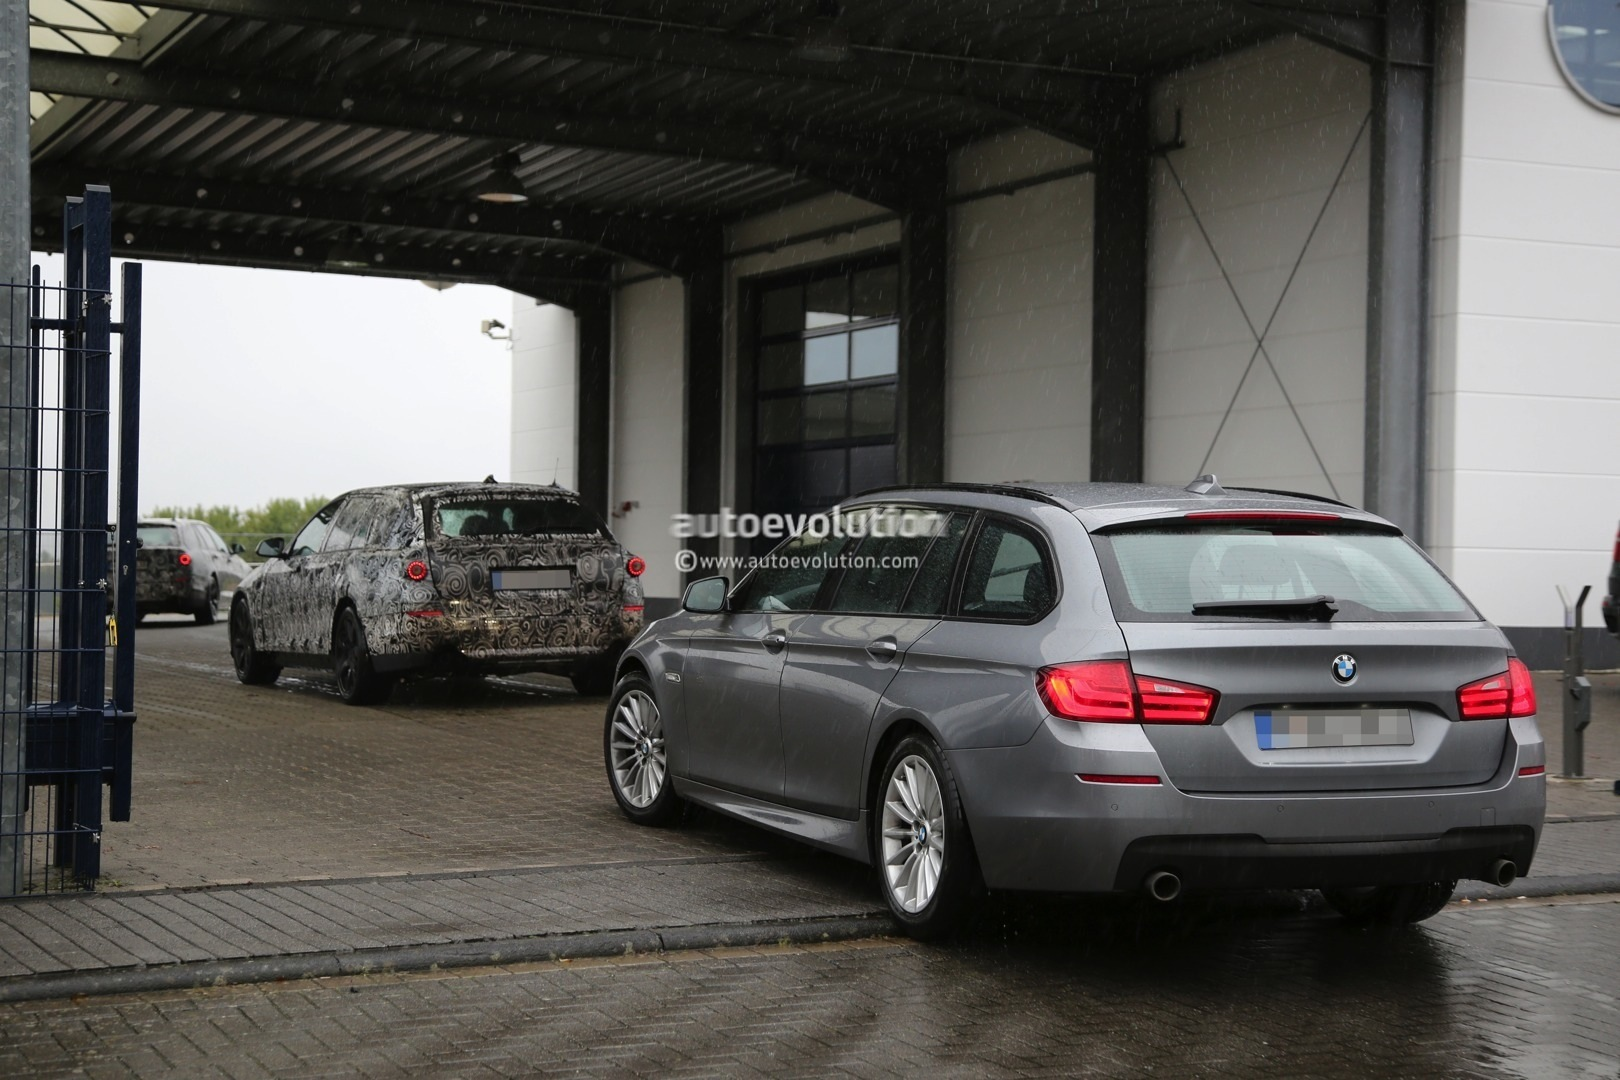 2016 bmw g31 5 series touring spied breaking down autoevolution. Black Bedroom Furniture Sets. Home Design Ideas